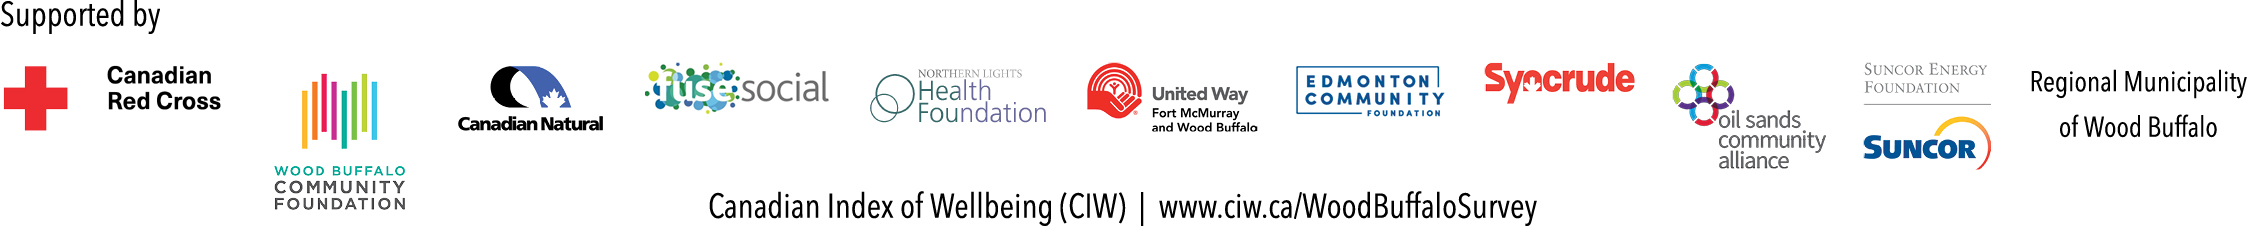 Coloured logos for Wood Buffalo supporting partners